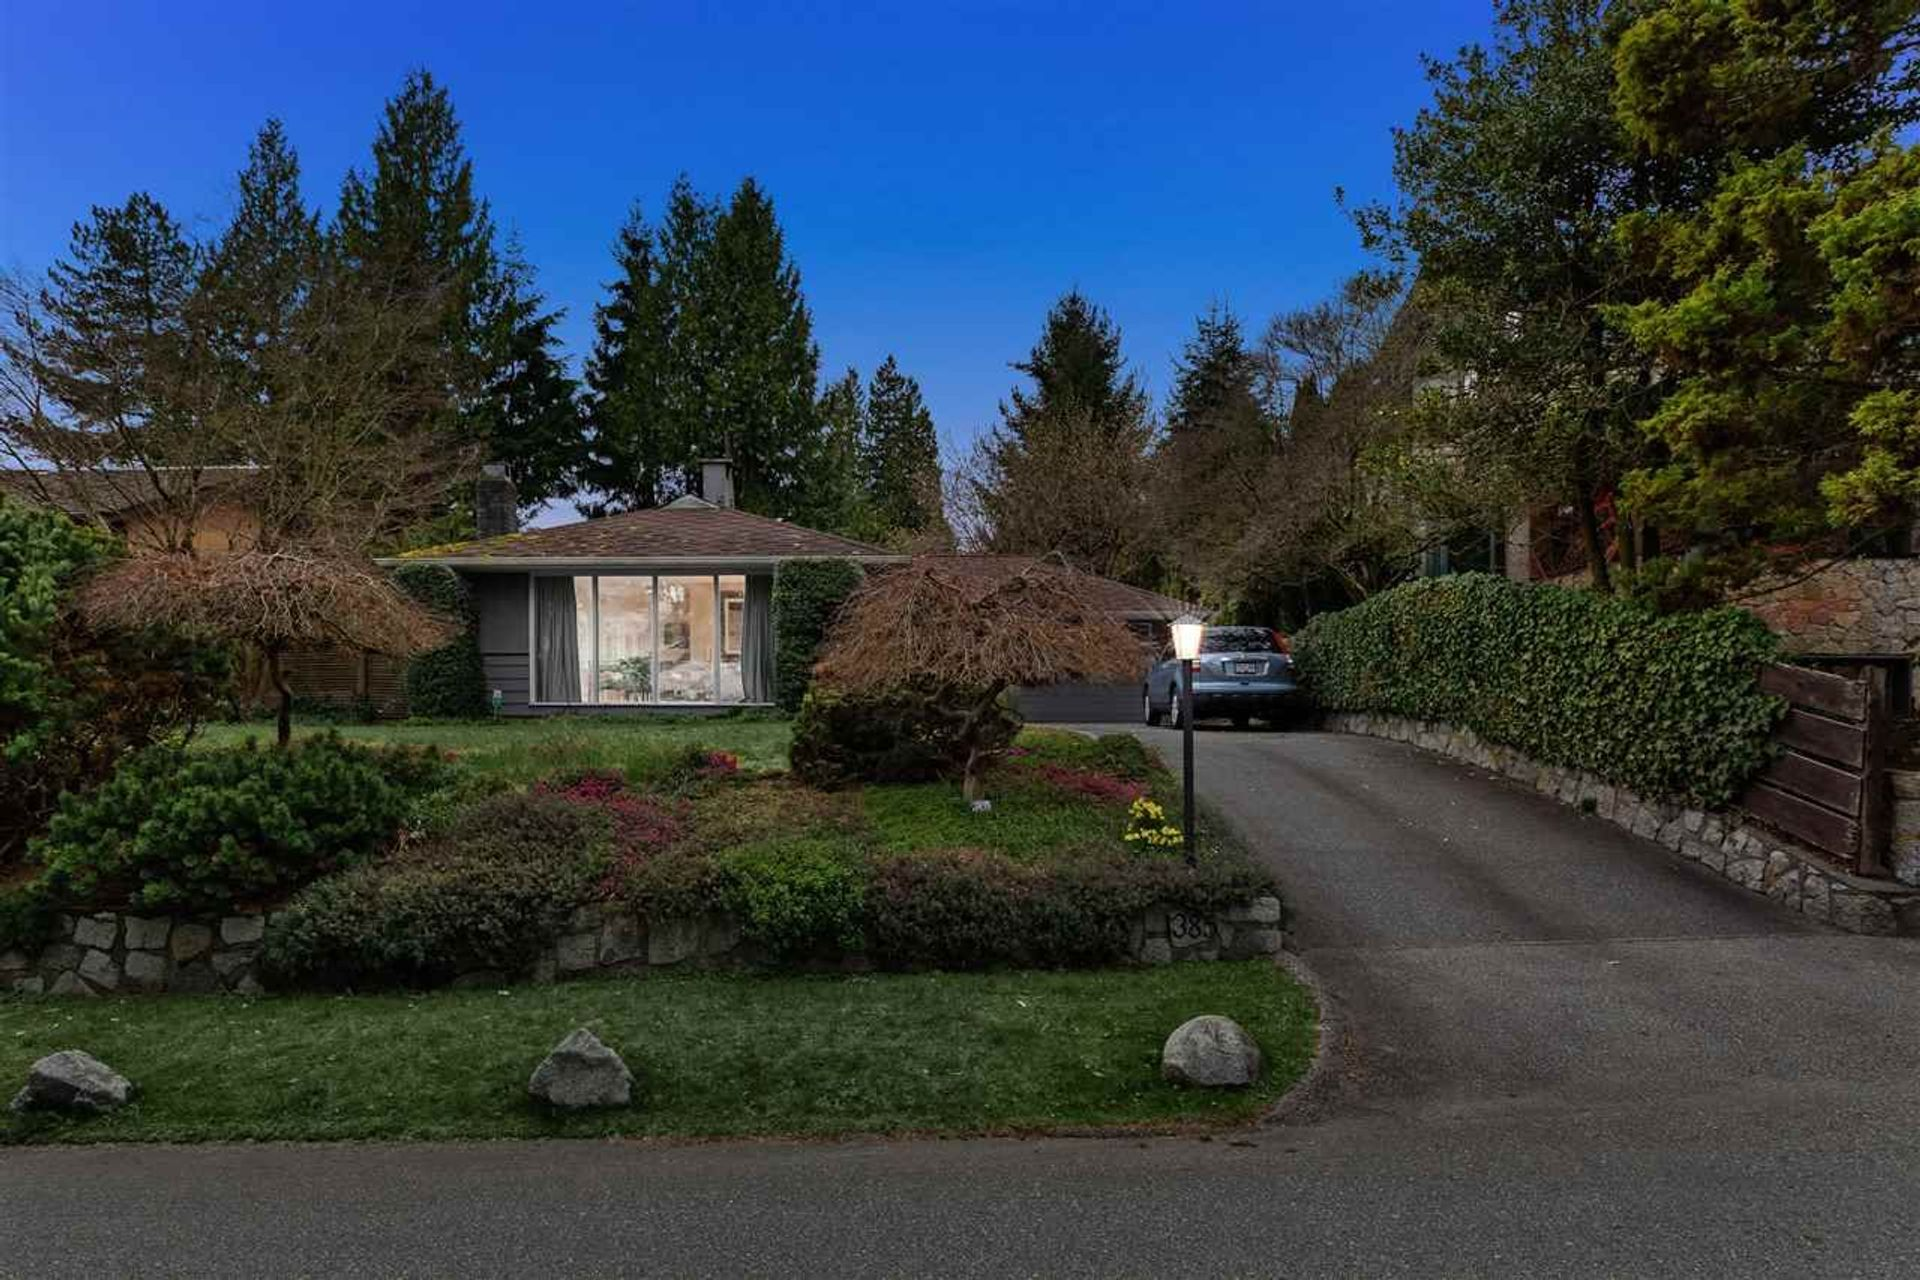 1385-19th-street-ambleside-west-vancouver-01 at 1385 19th Street, Ambleside, West Vancouver